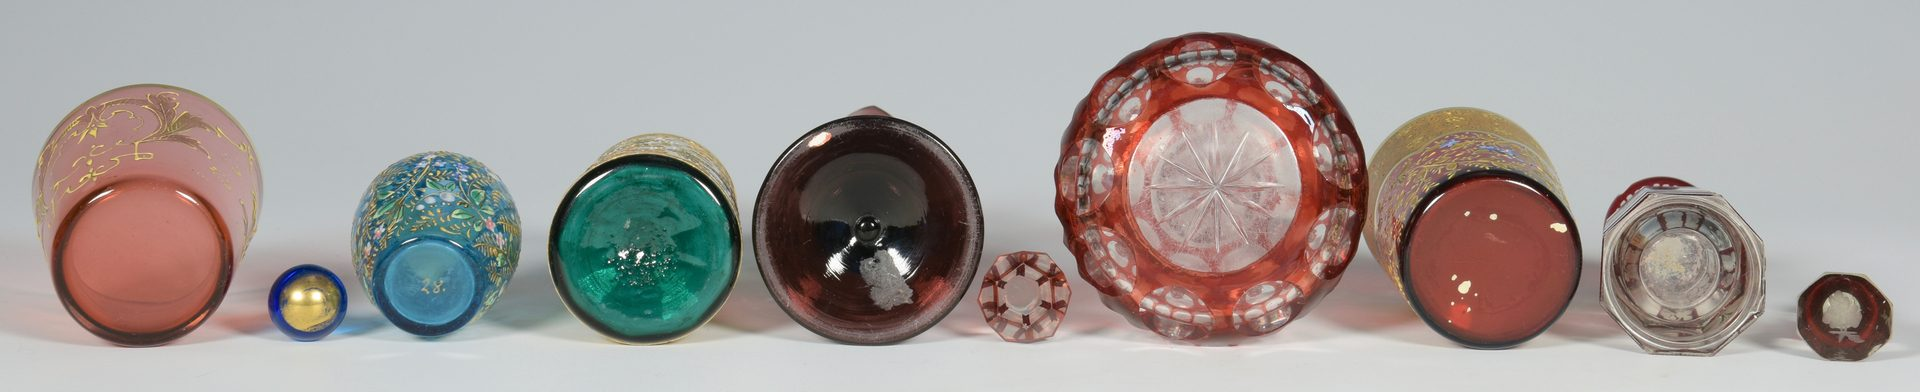 Lot 685: 7 Colored Glass Perfume Bottles and Cups